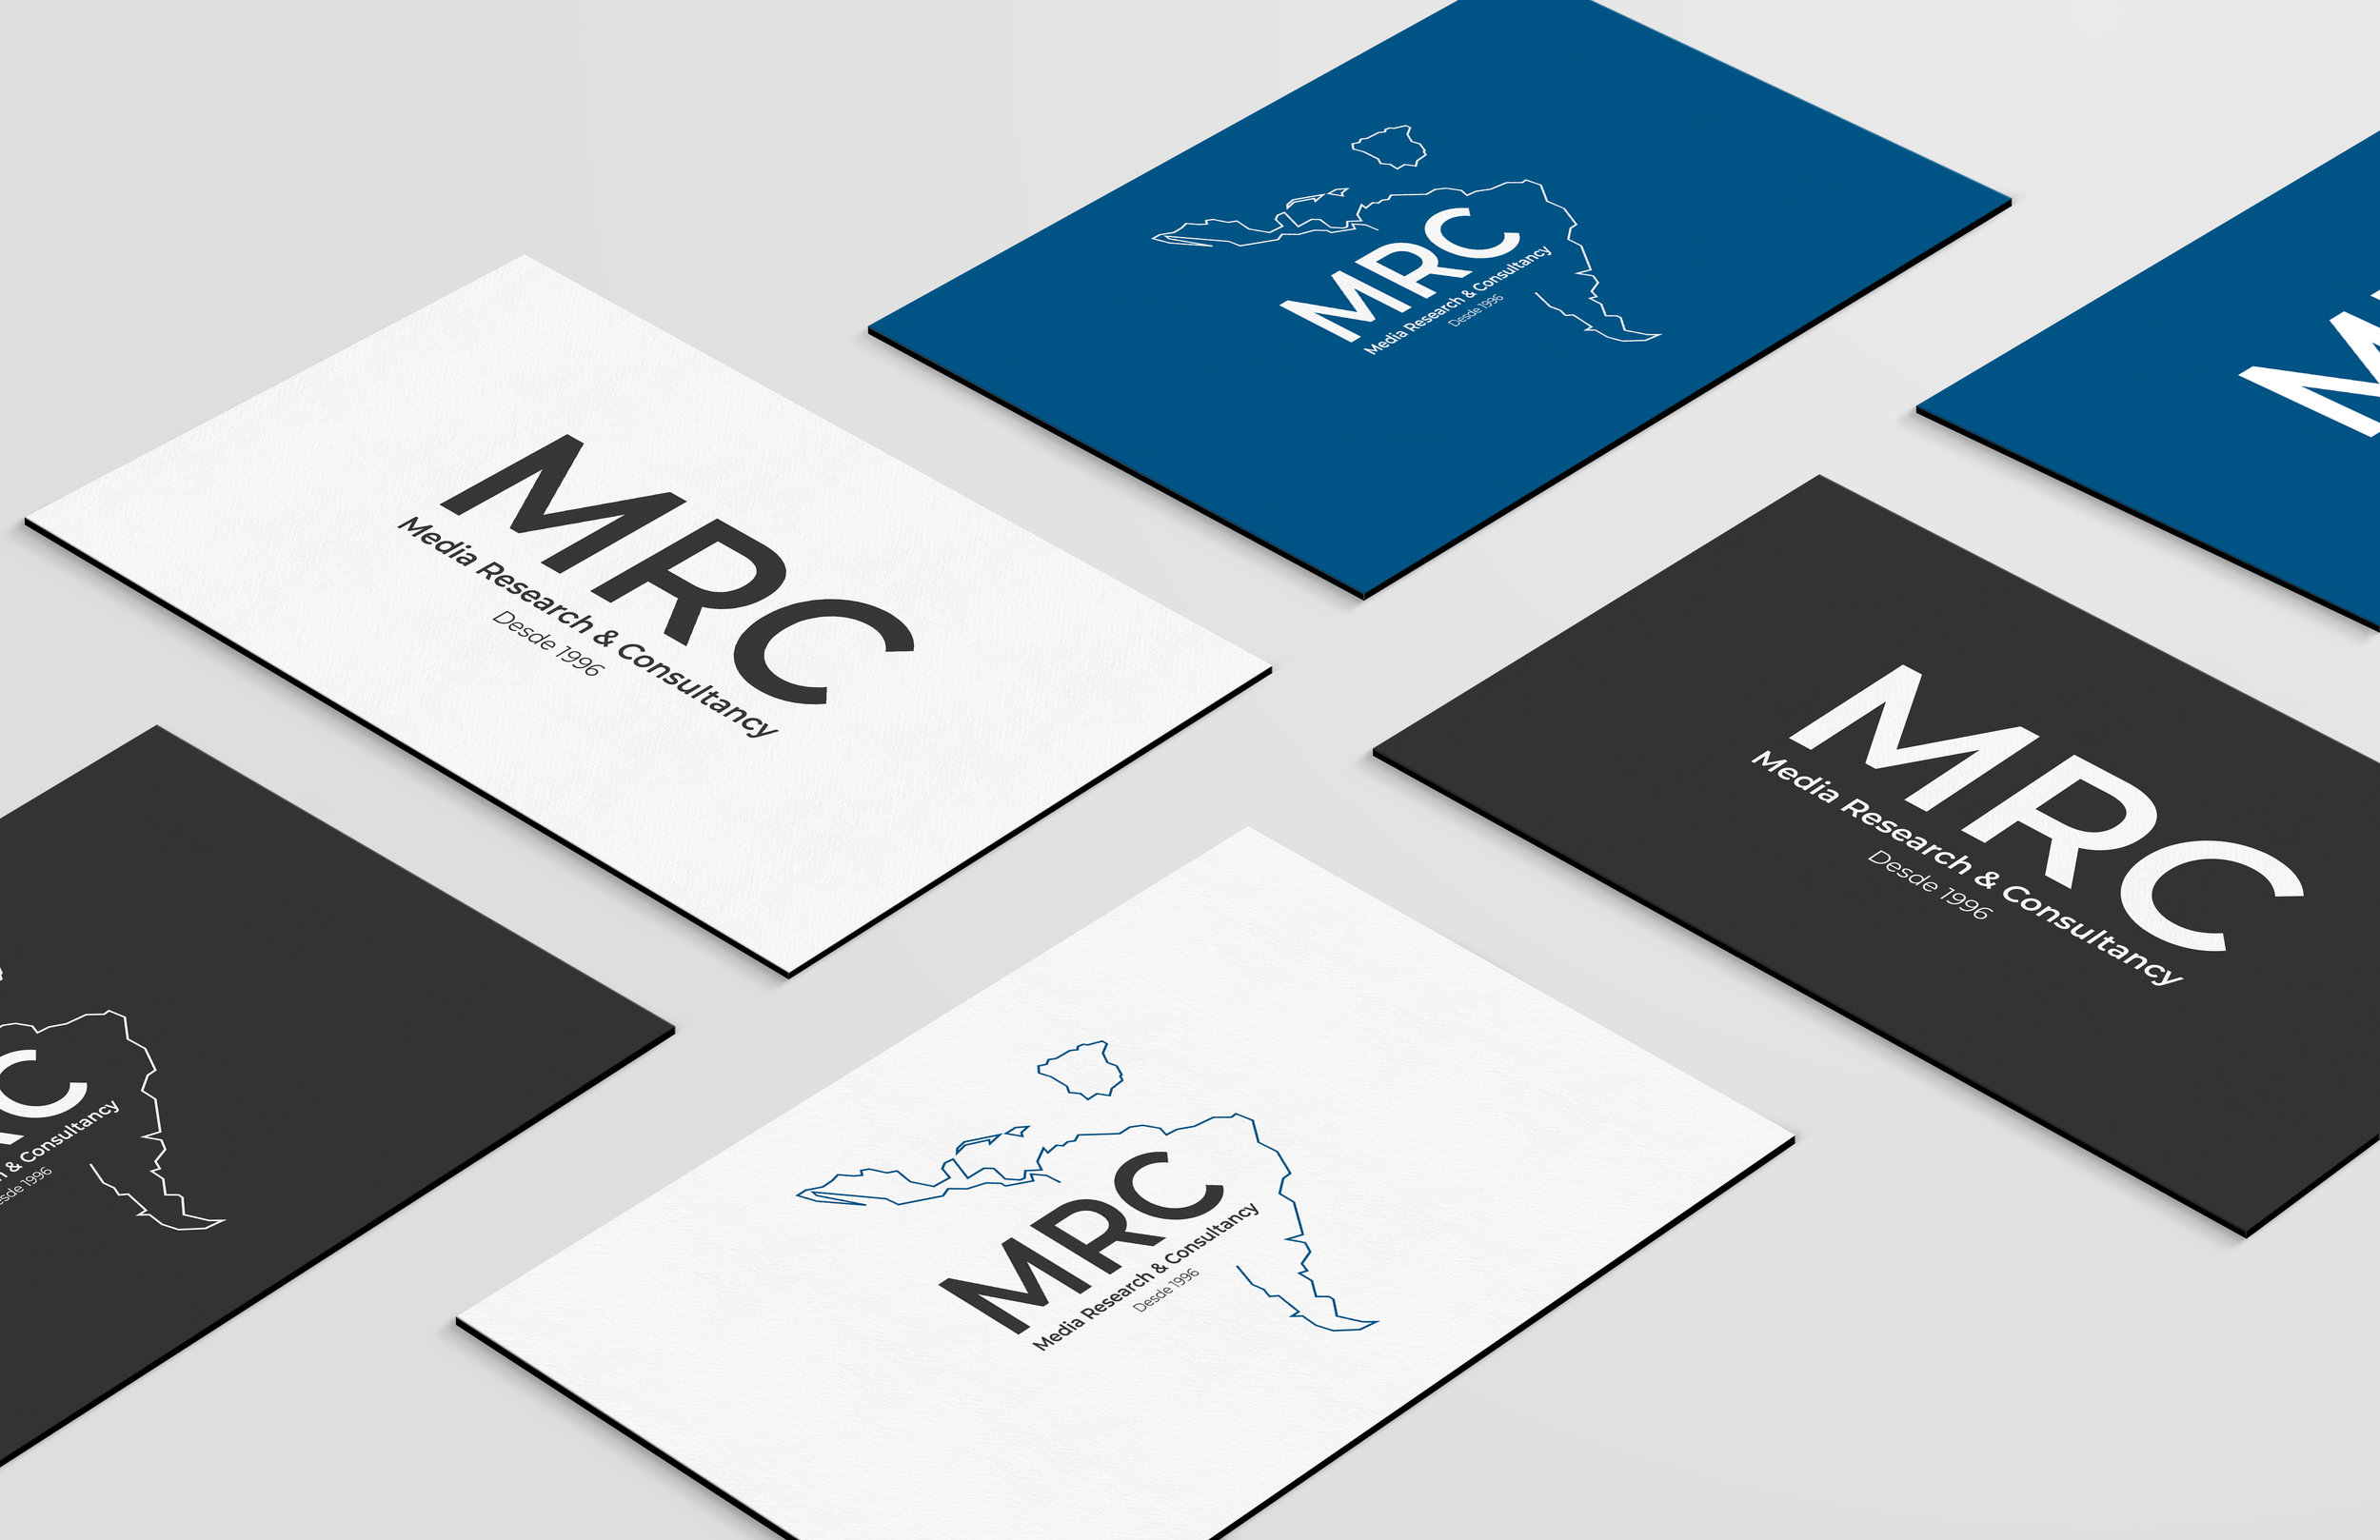 MRC-media-research-consulting-business-card-perspective-MockUp.jpg